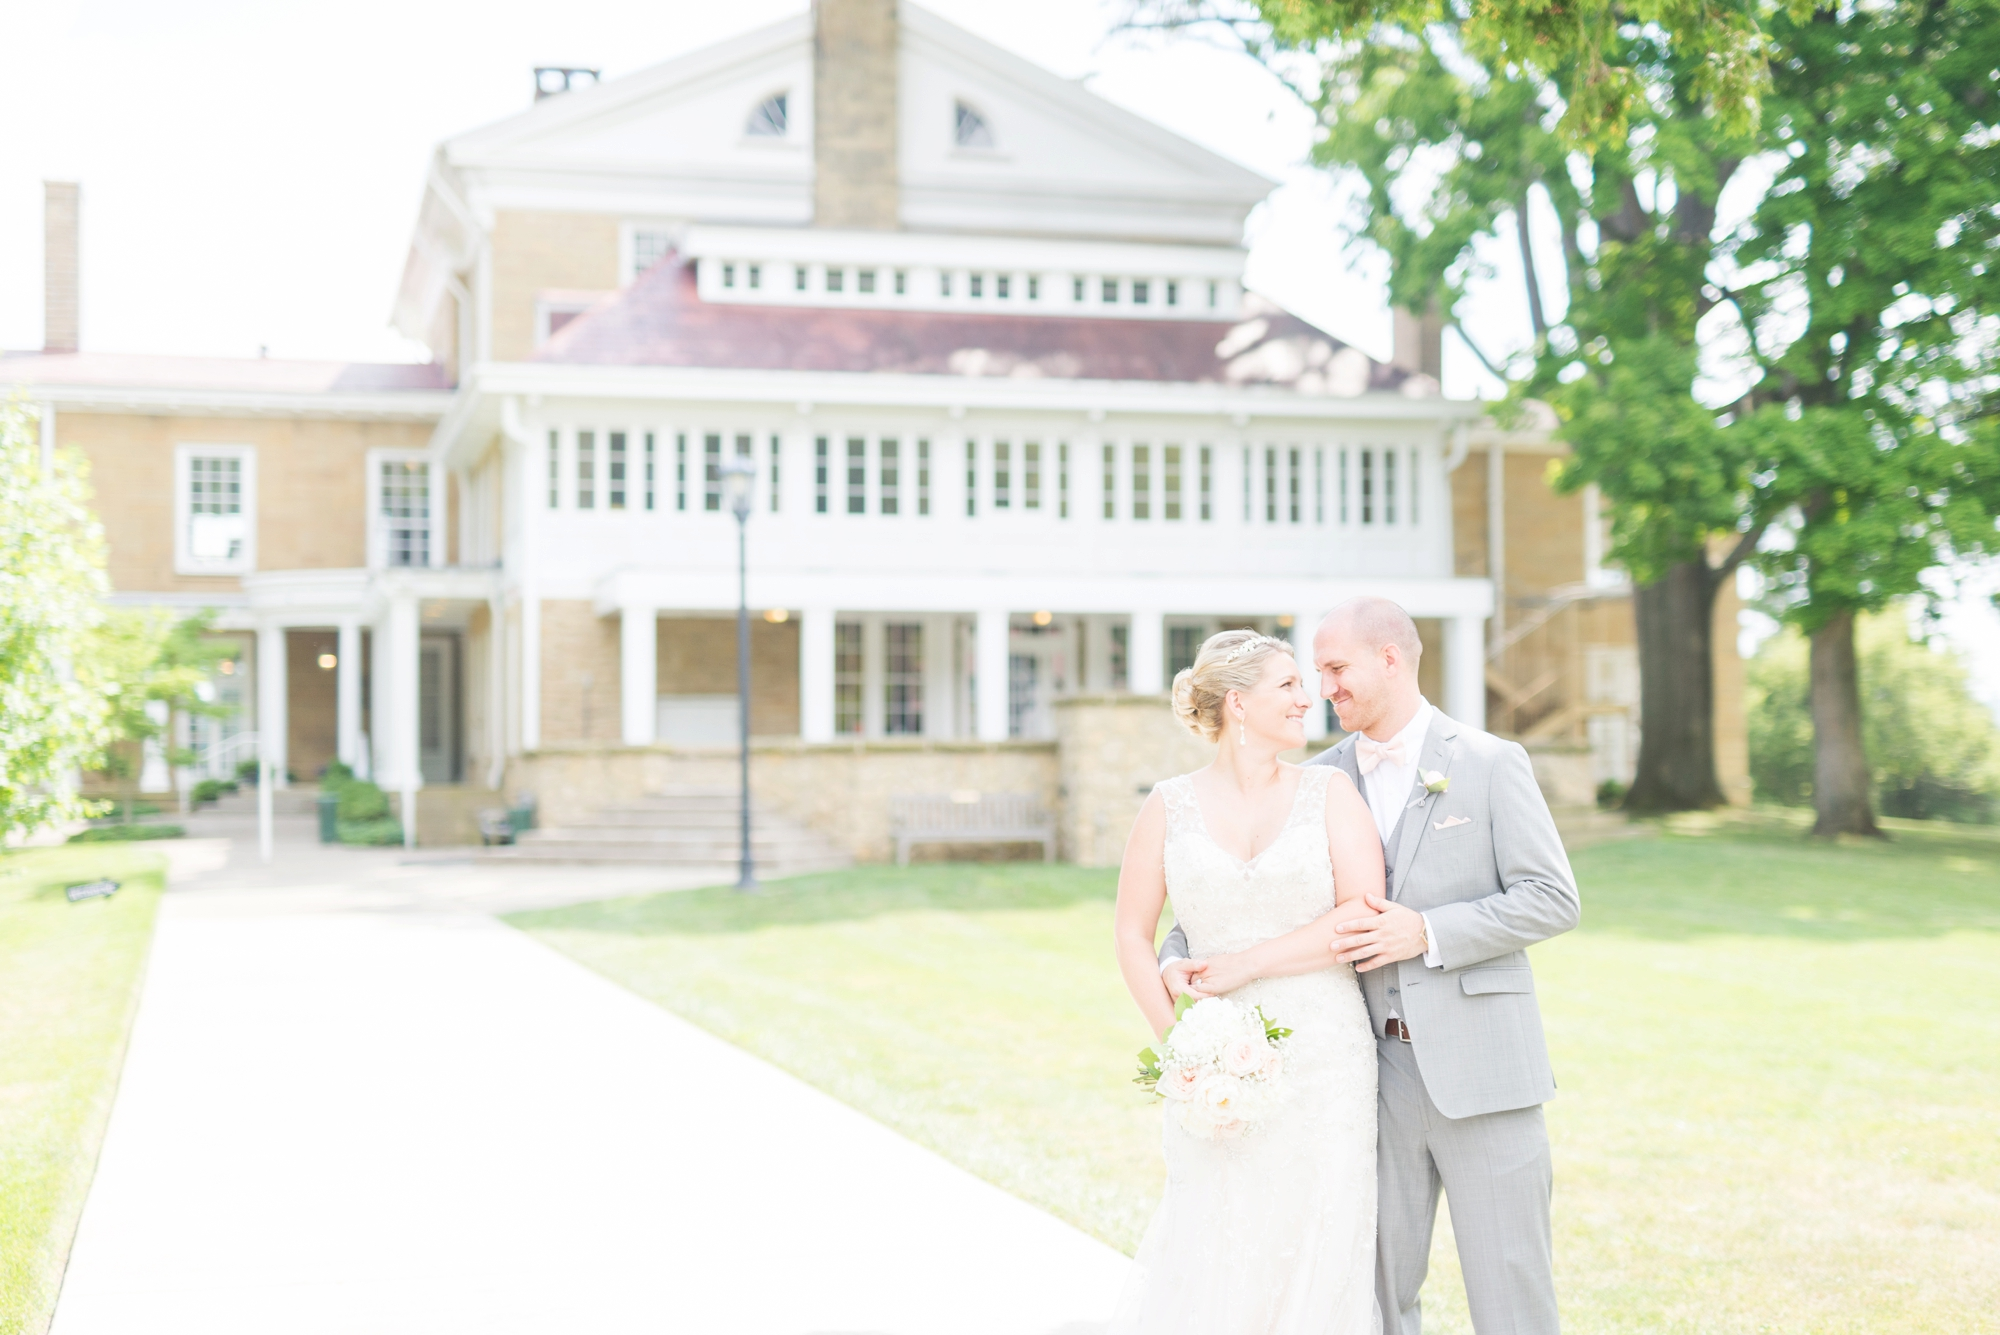 elegant-wedding-photography-at-bryn-du-mansion-in-granville-ohio_0557